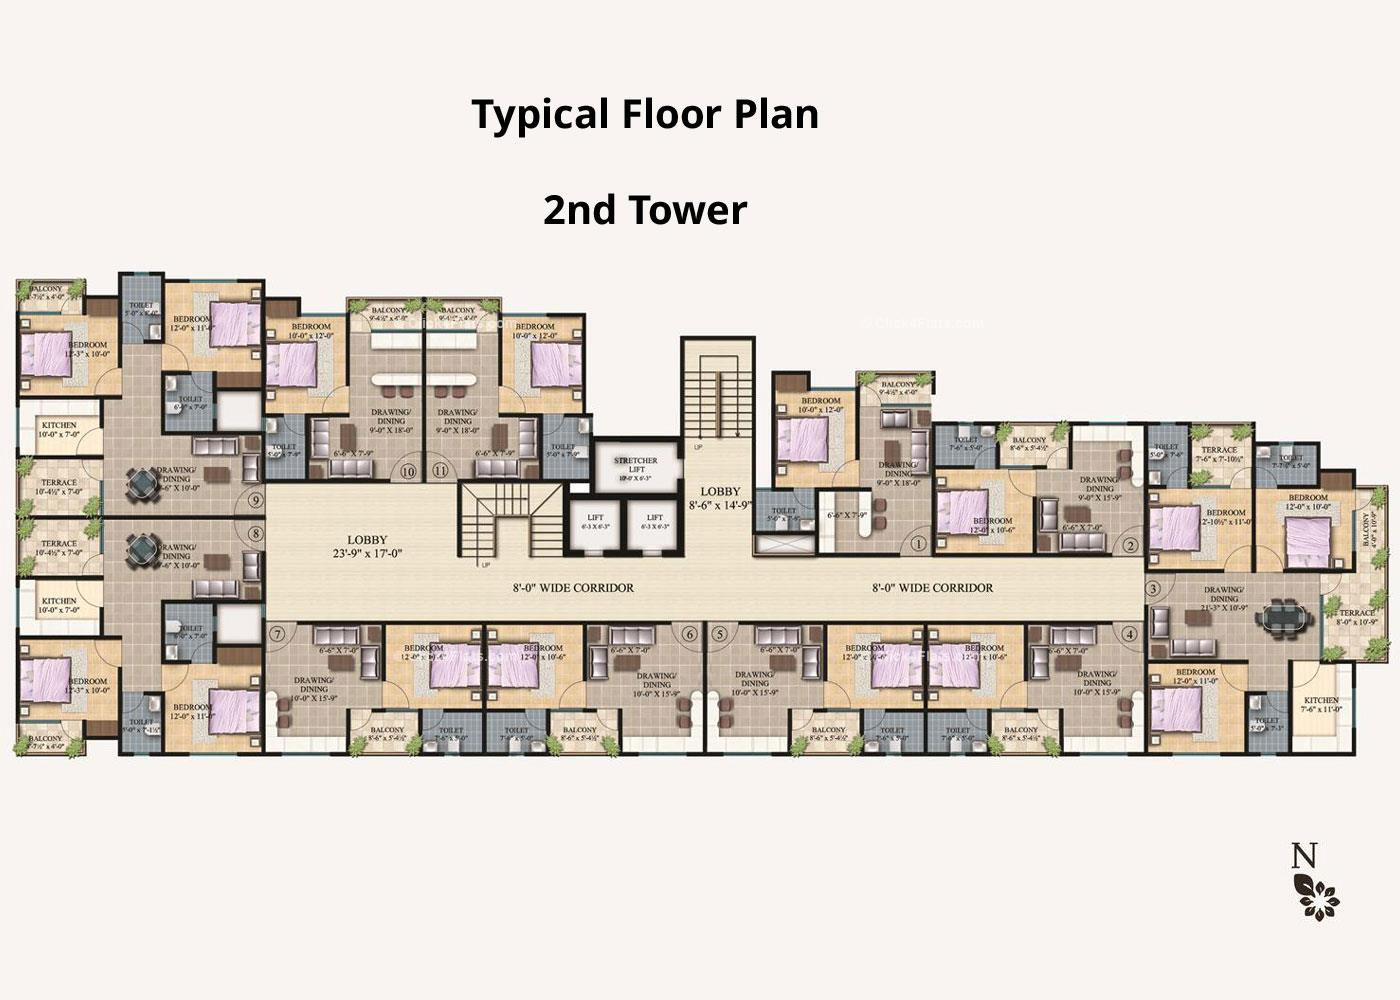 Arihant Legacy Typical Floor Plan (2nd Block)